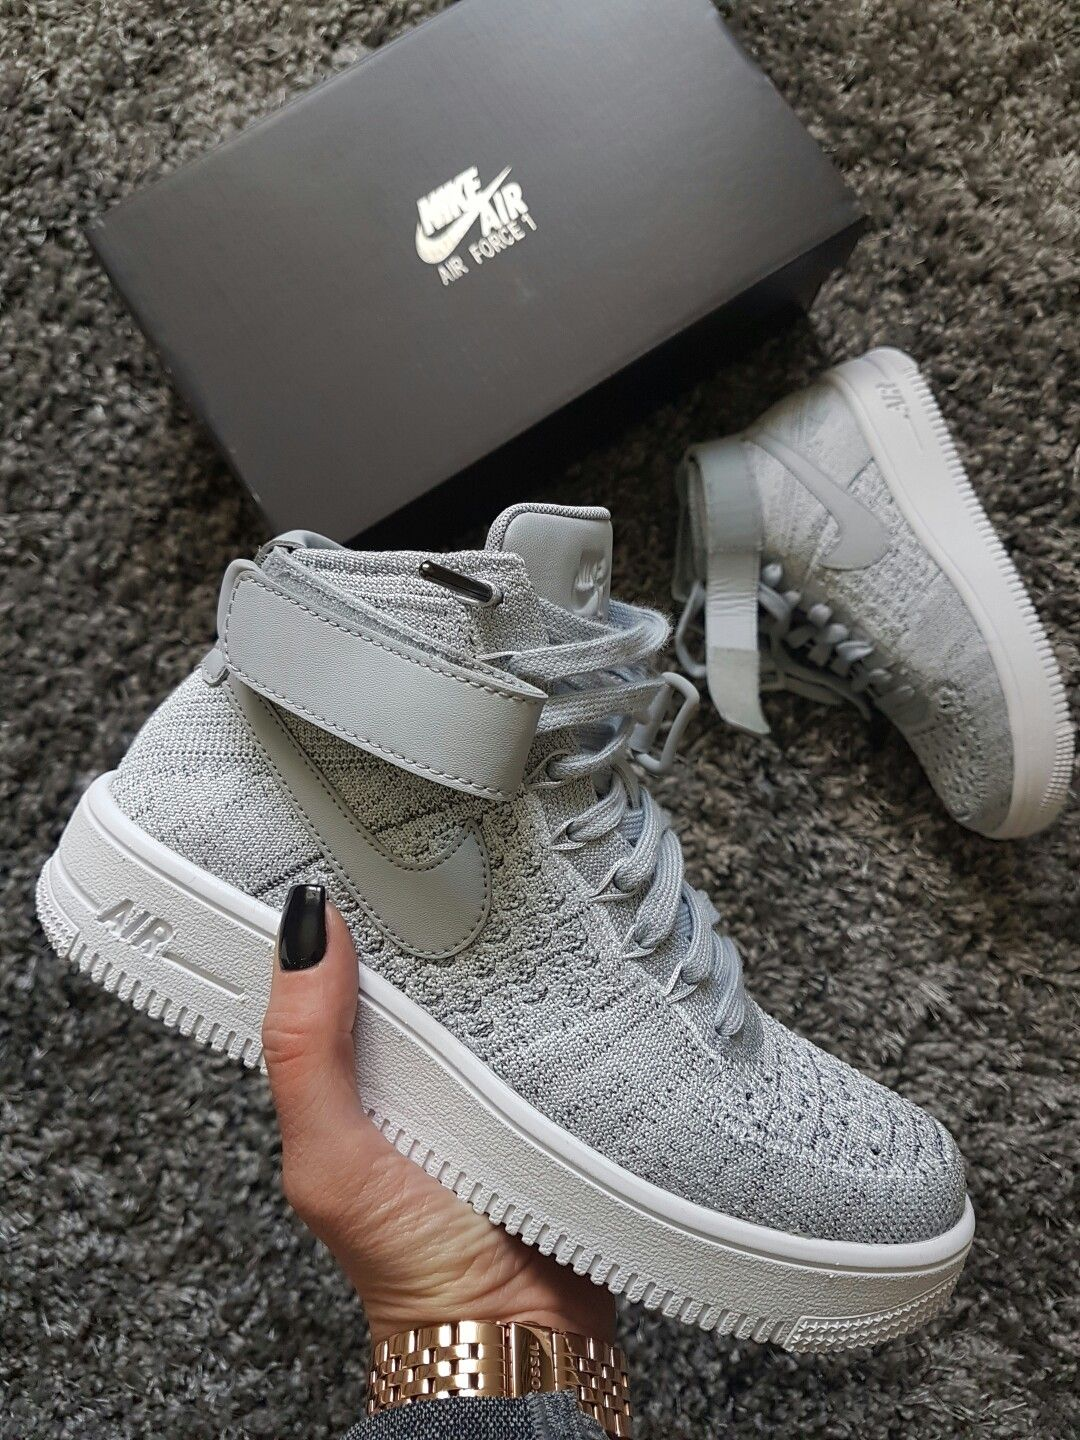 brand new 11a39 f2299 ... new zealand nike air force 1 mid more photos mraze85 instagram ca646  abf78